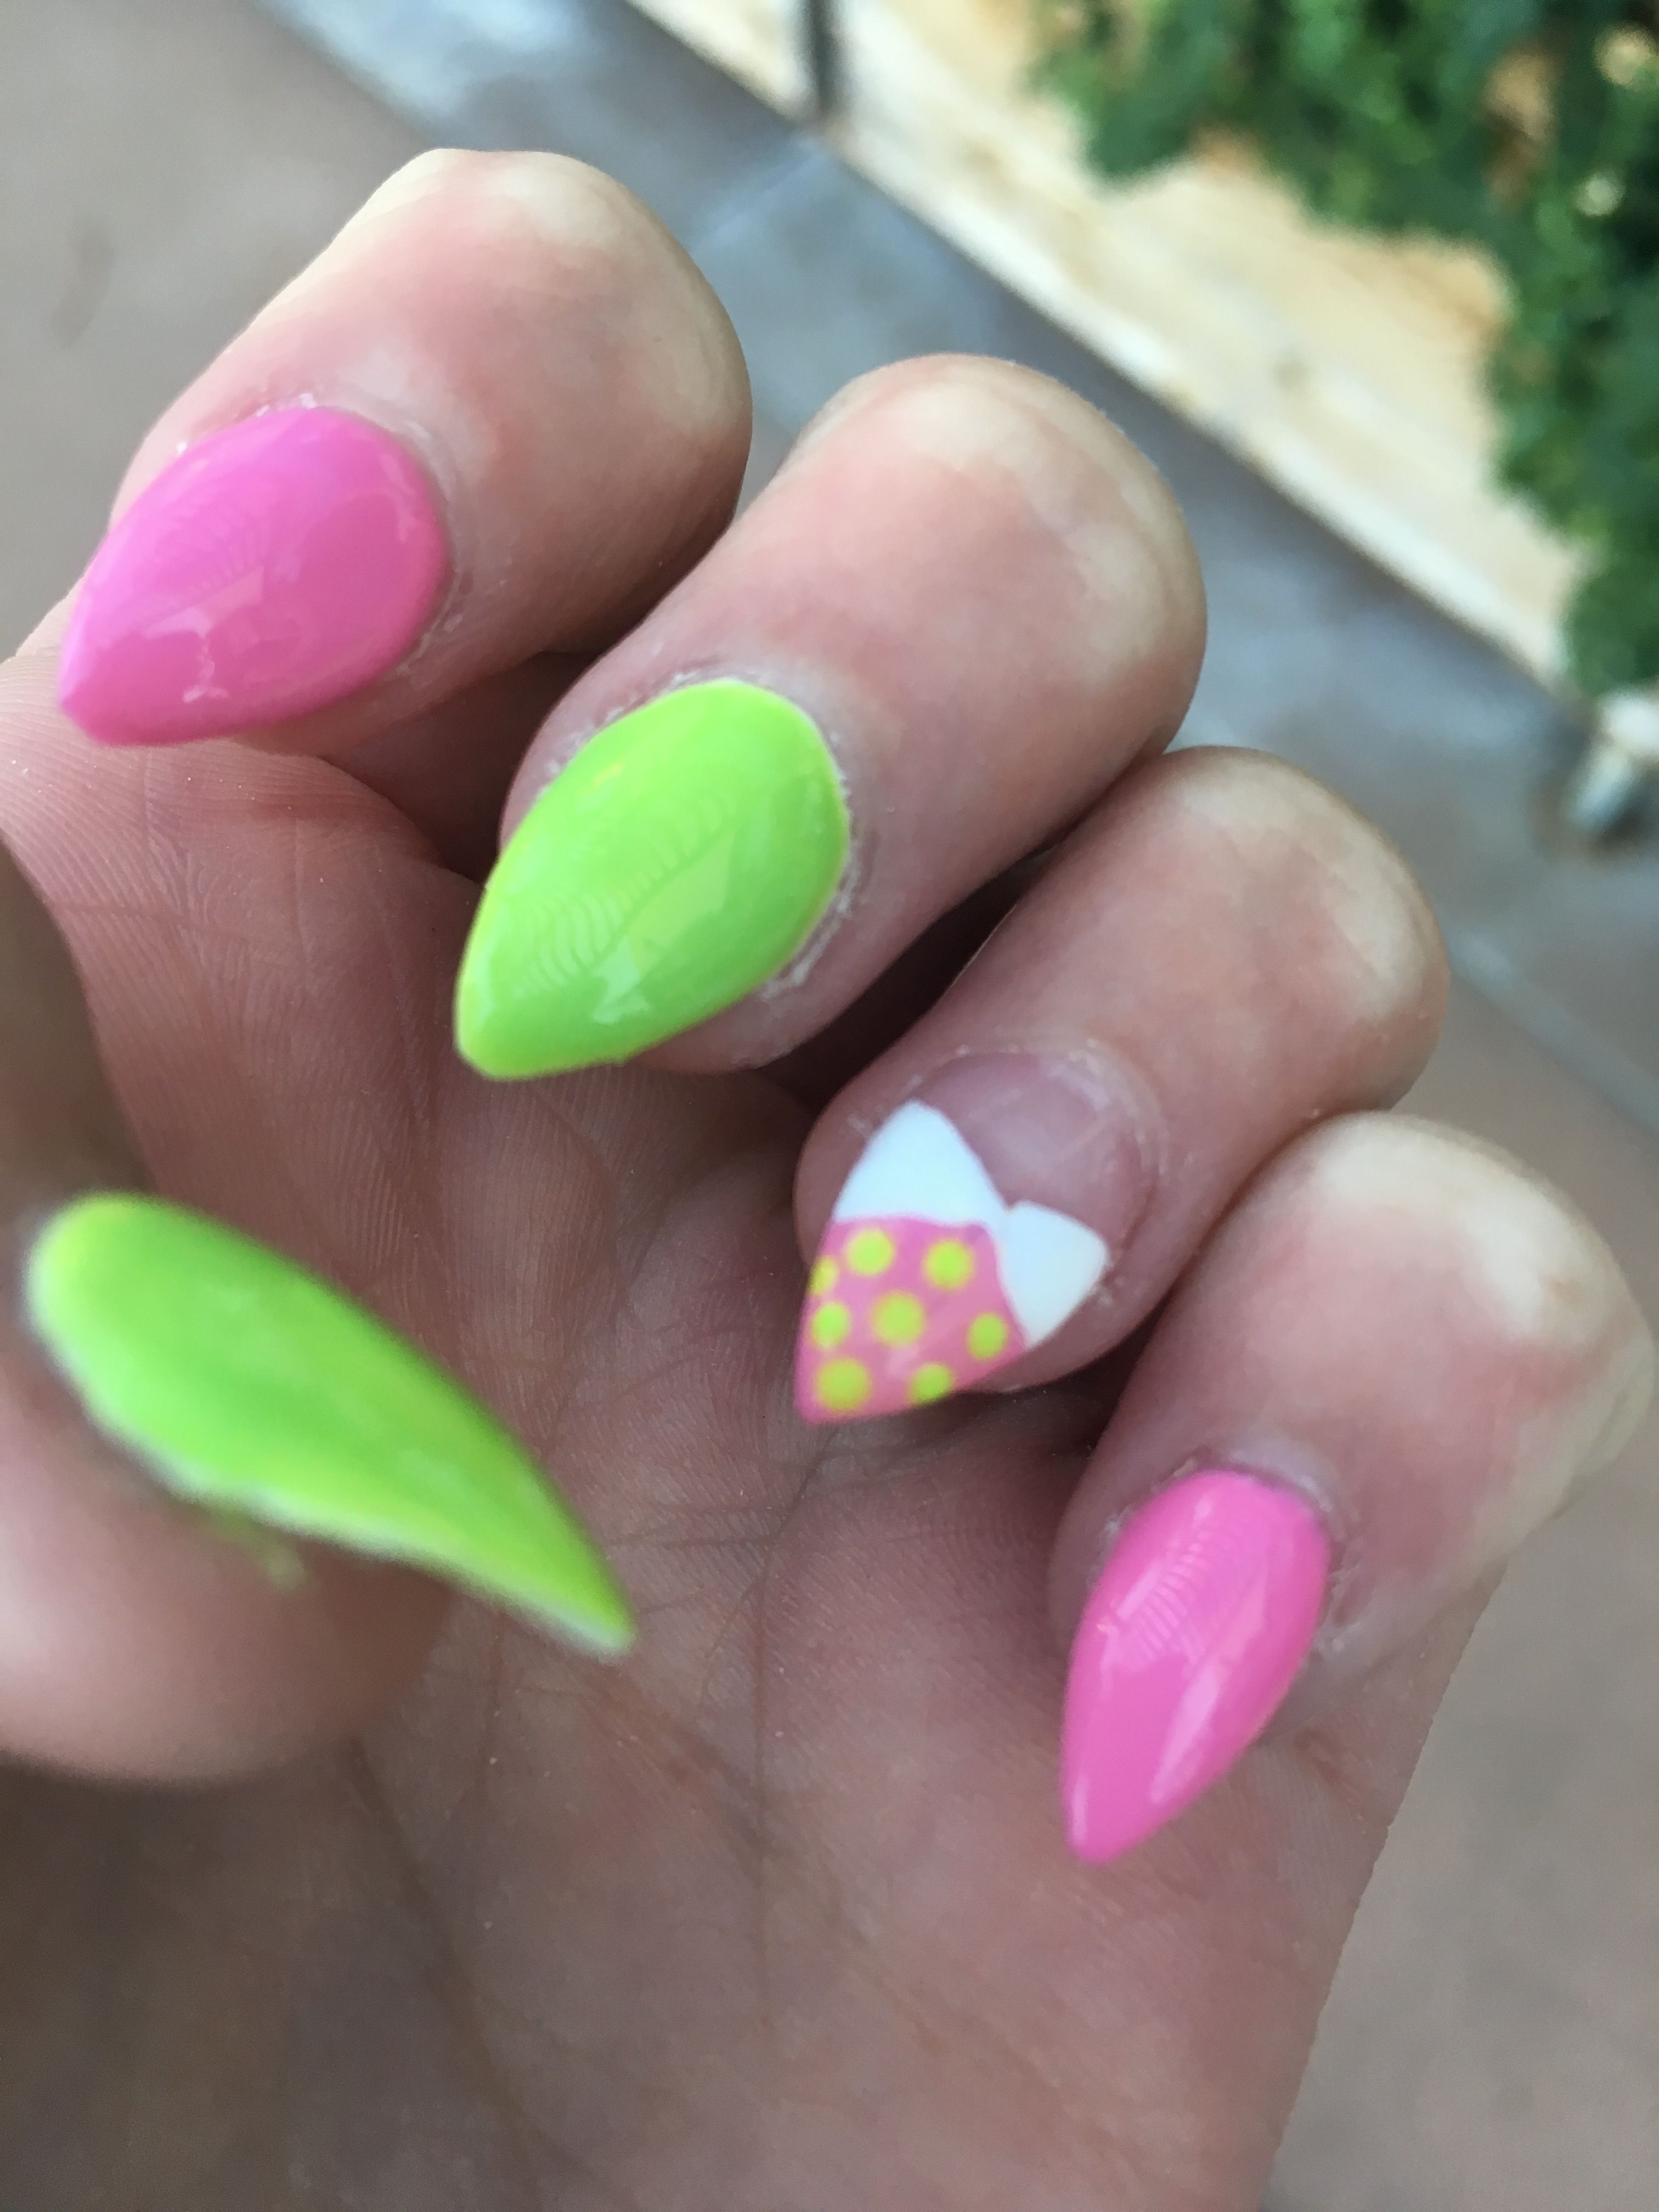 Pointy acrylic nails (With images) | Pointy acrylic nails ...